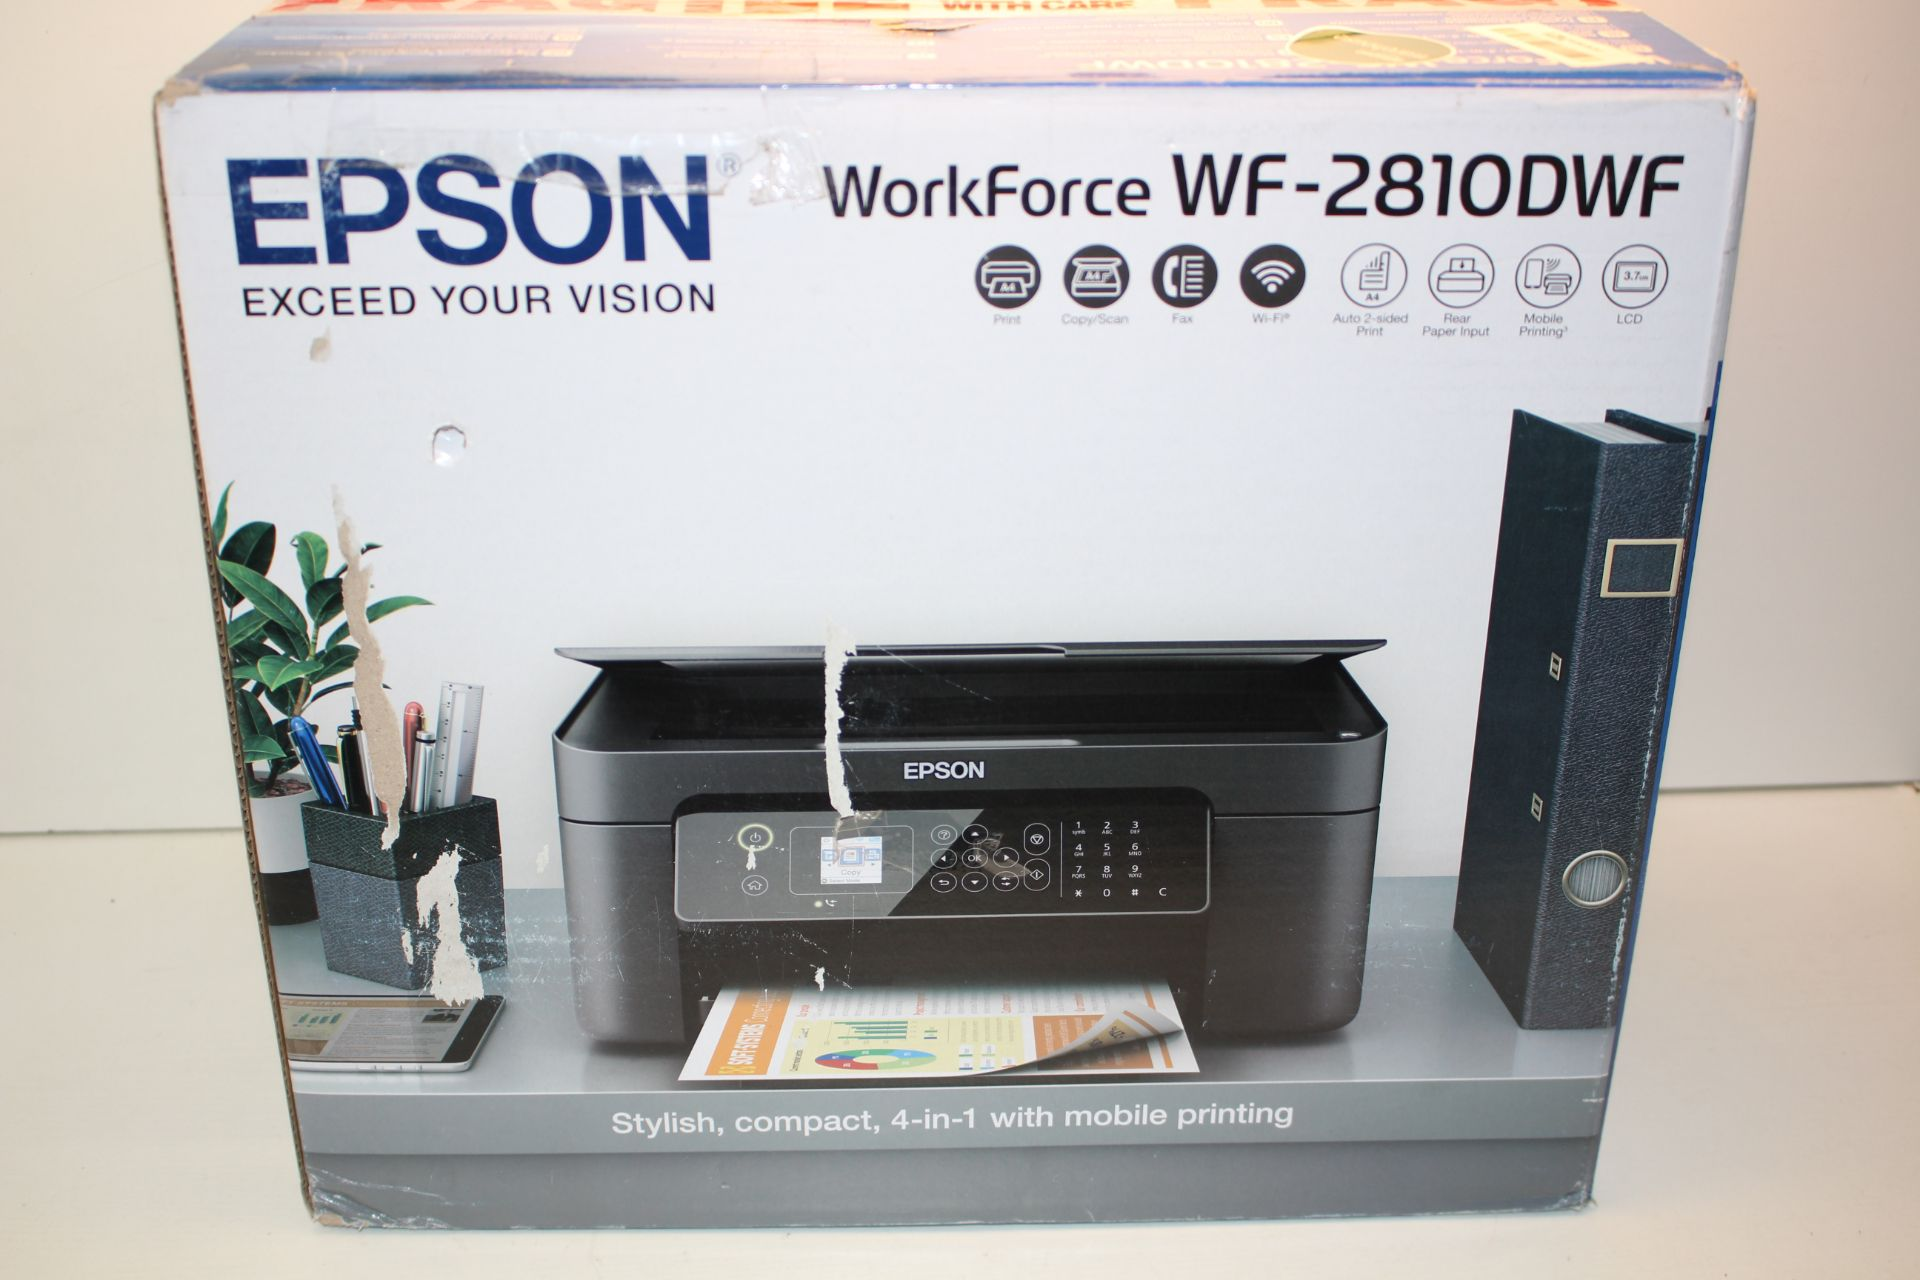 BOXED EPSON WORKFORCE WF-2810DWF PRINTER RRP £86.47Condition ReportAppraisal Available on Request-